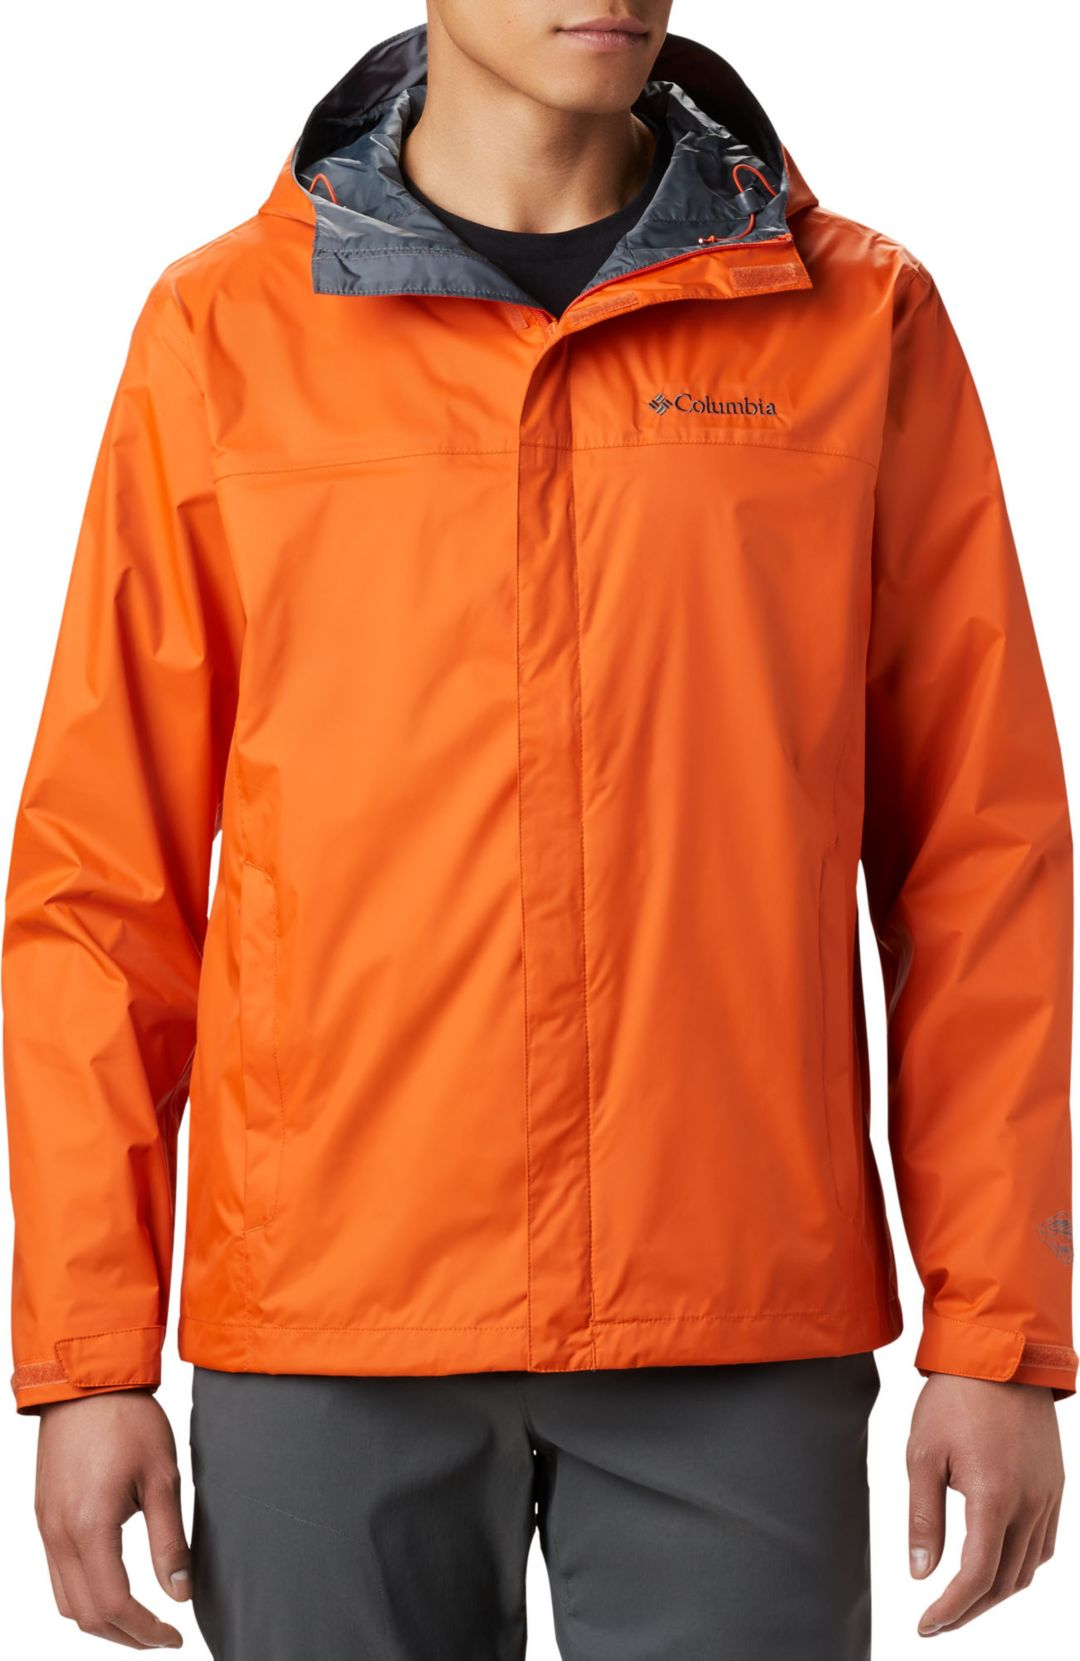 premium selection wholesale dealer many choices of Columbia Men's Watertight II Rain Jacket